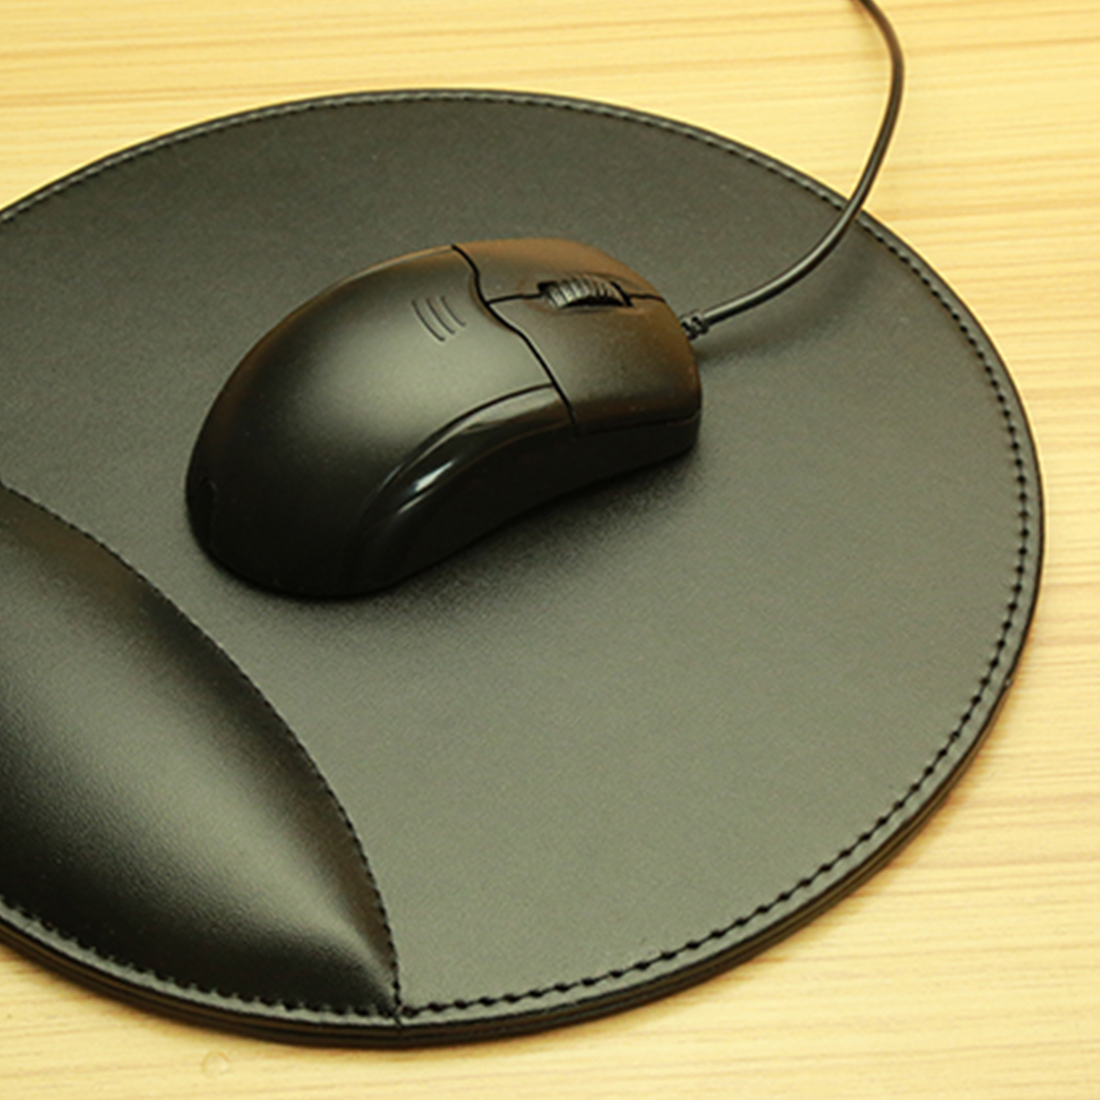 лучшая цена NOYOKERE Good Sale 3D Leather Computer Mouse Pad with Wrist Rest Ergonomic Office Soft Sponge Wrist Support Mat mousepad for PC